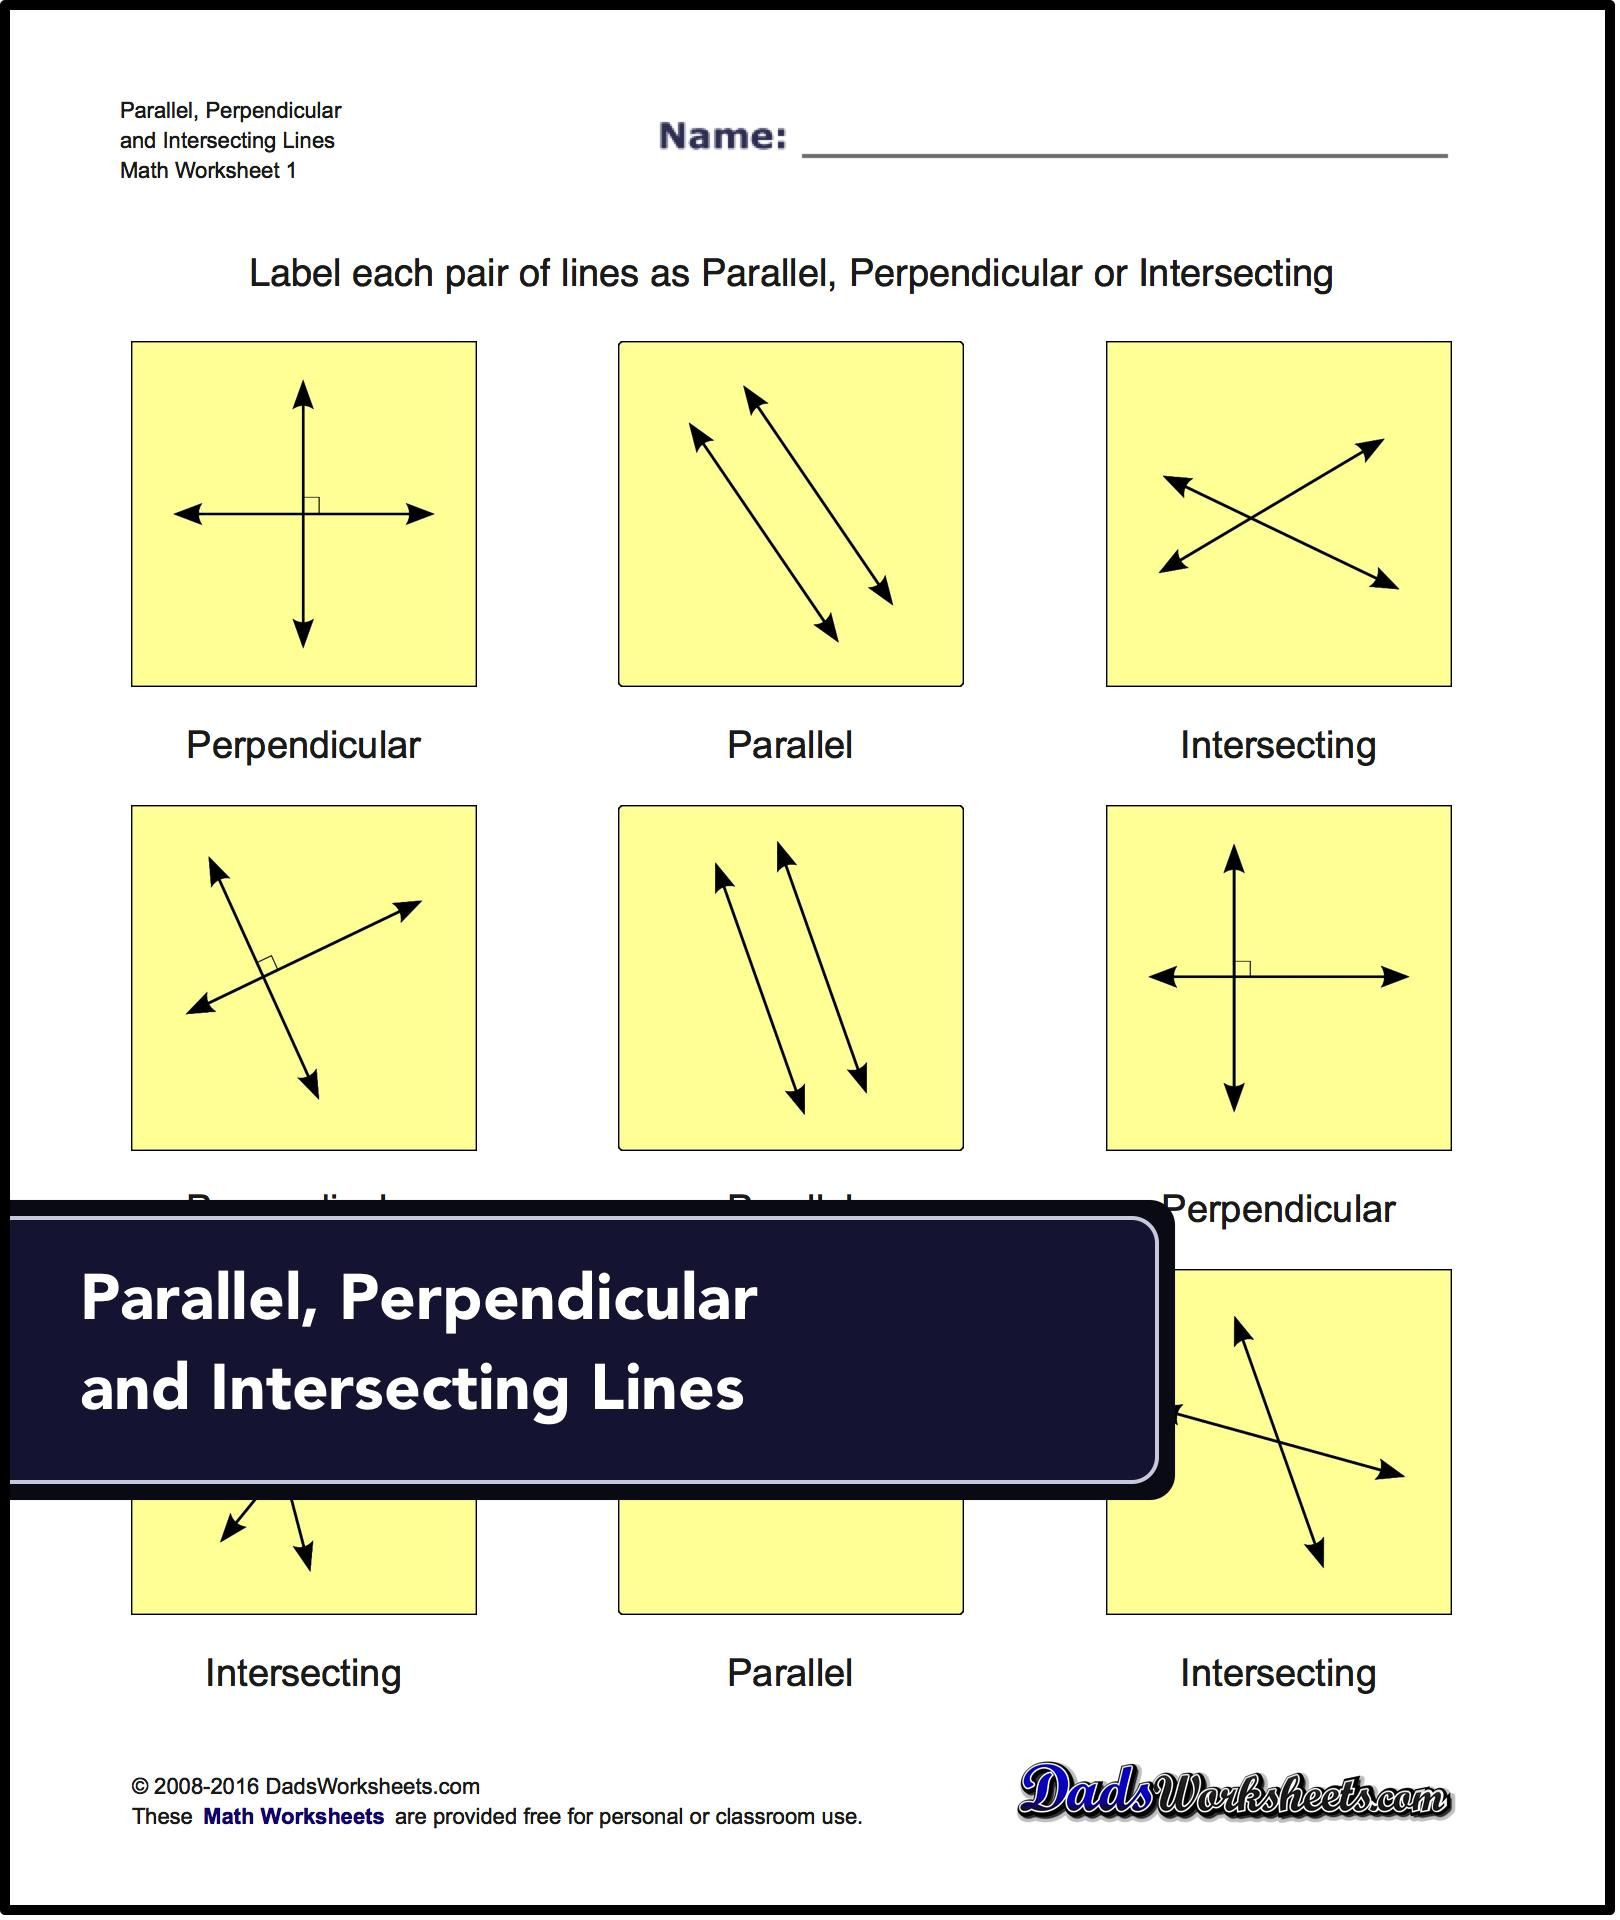 worksheet Parallel Perpendicular Intersecting Lines Worksheet basic geometry parallel perpendicular intersecting labelling lines as or